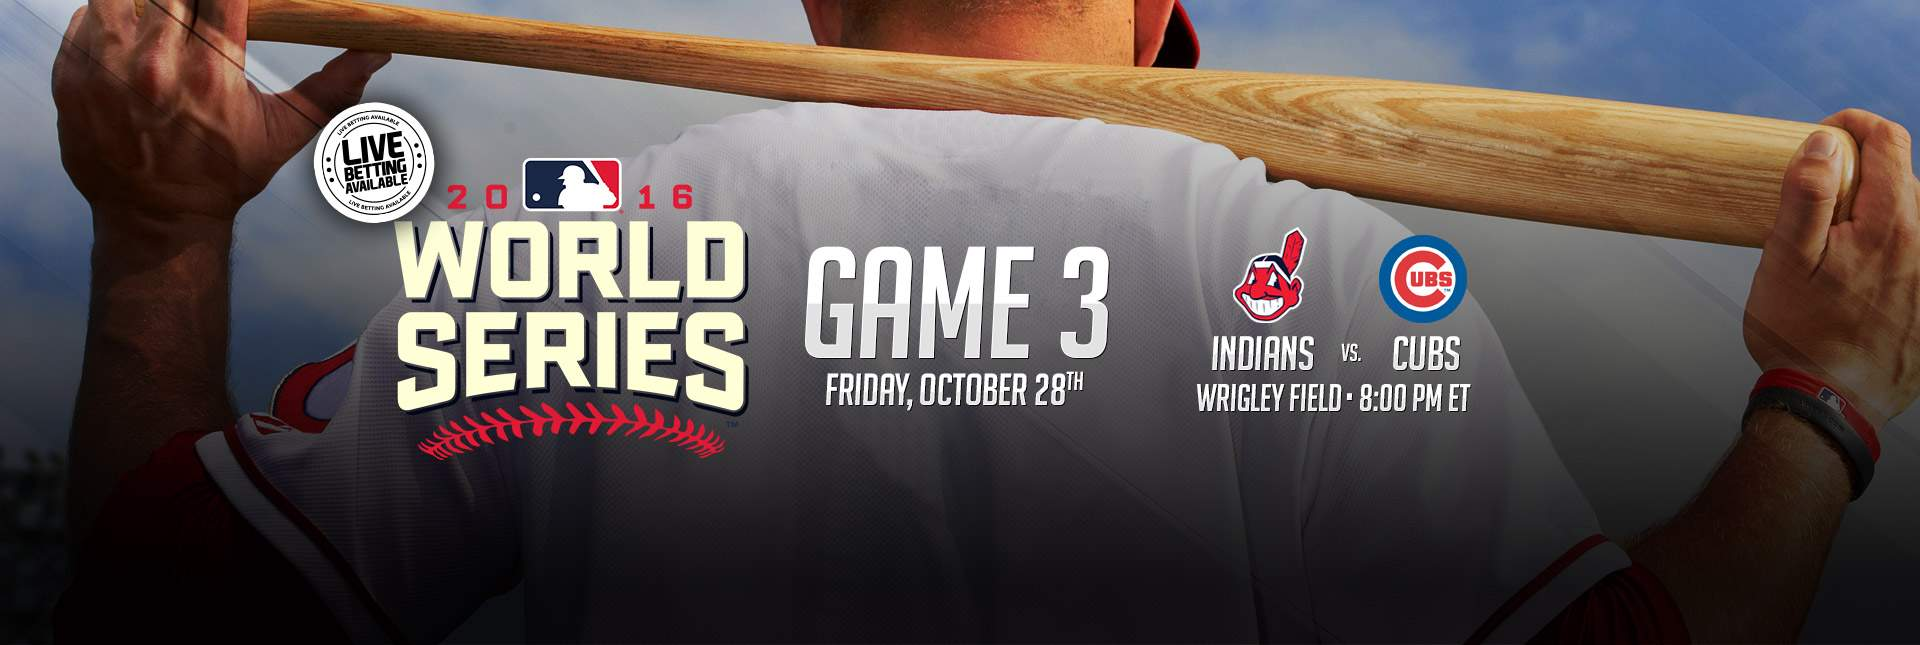 Indians vs Cubs World Series Game 3